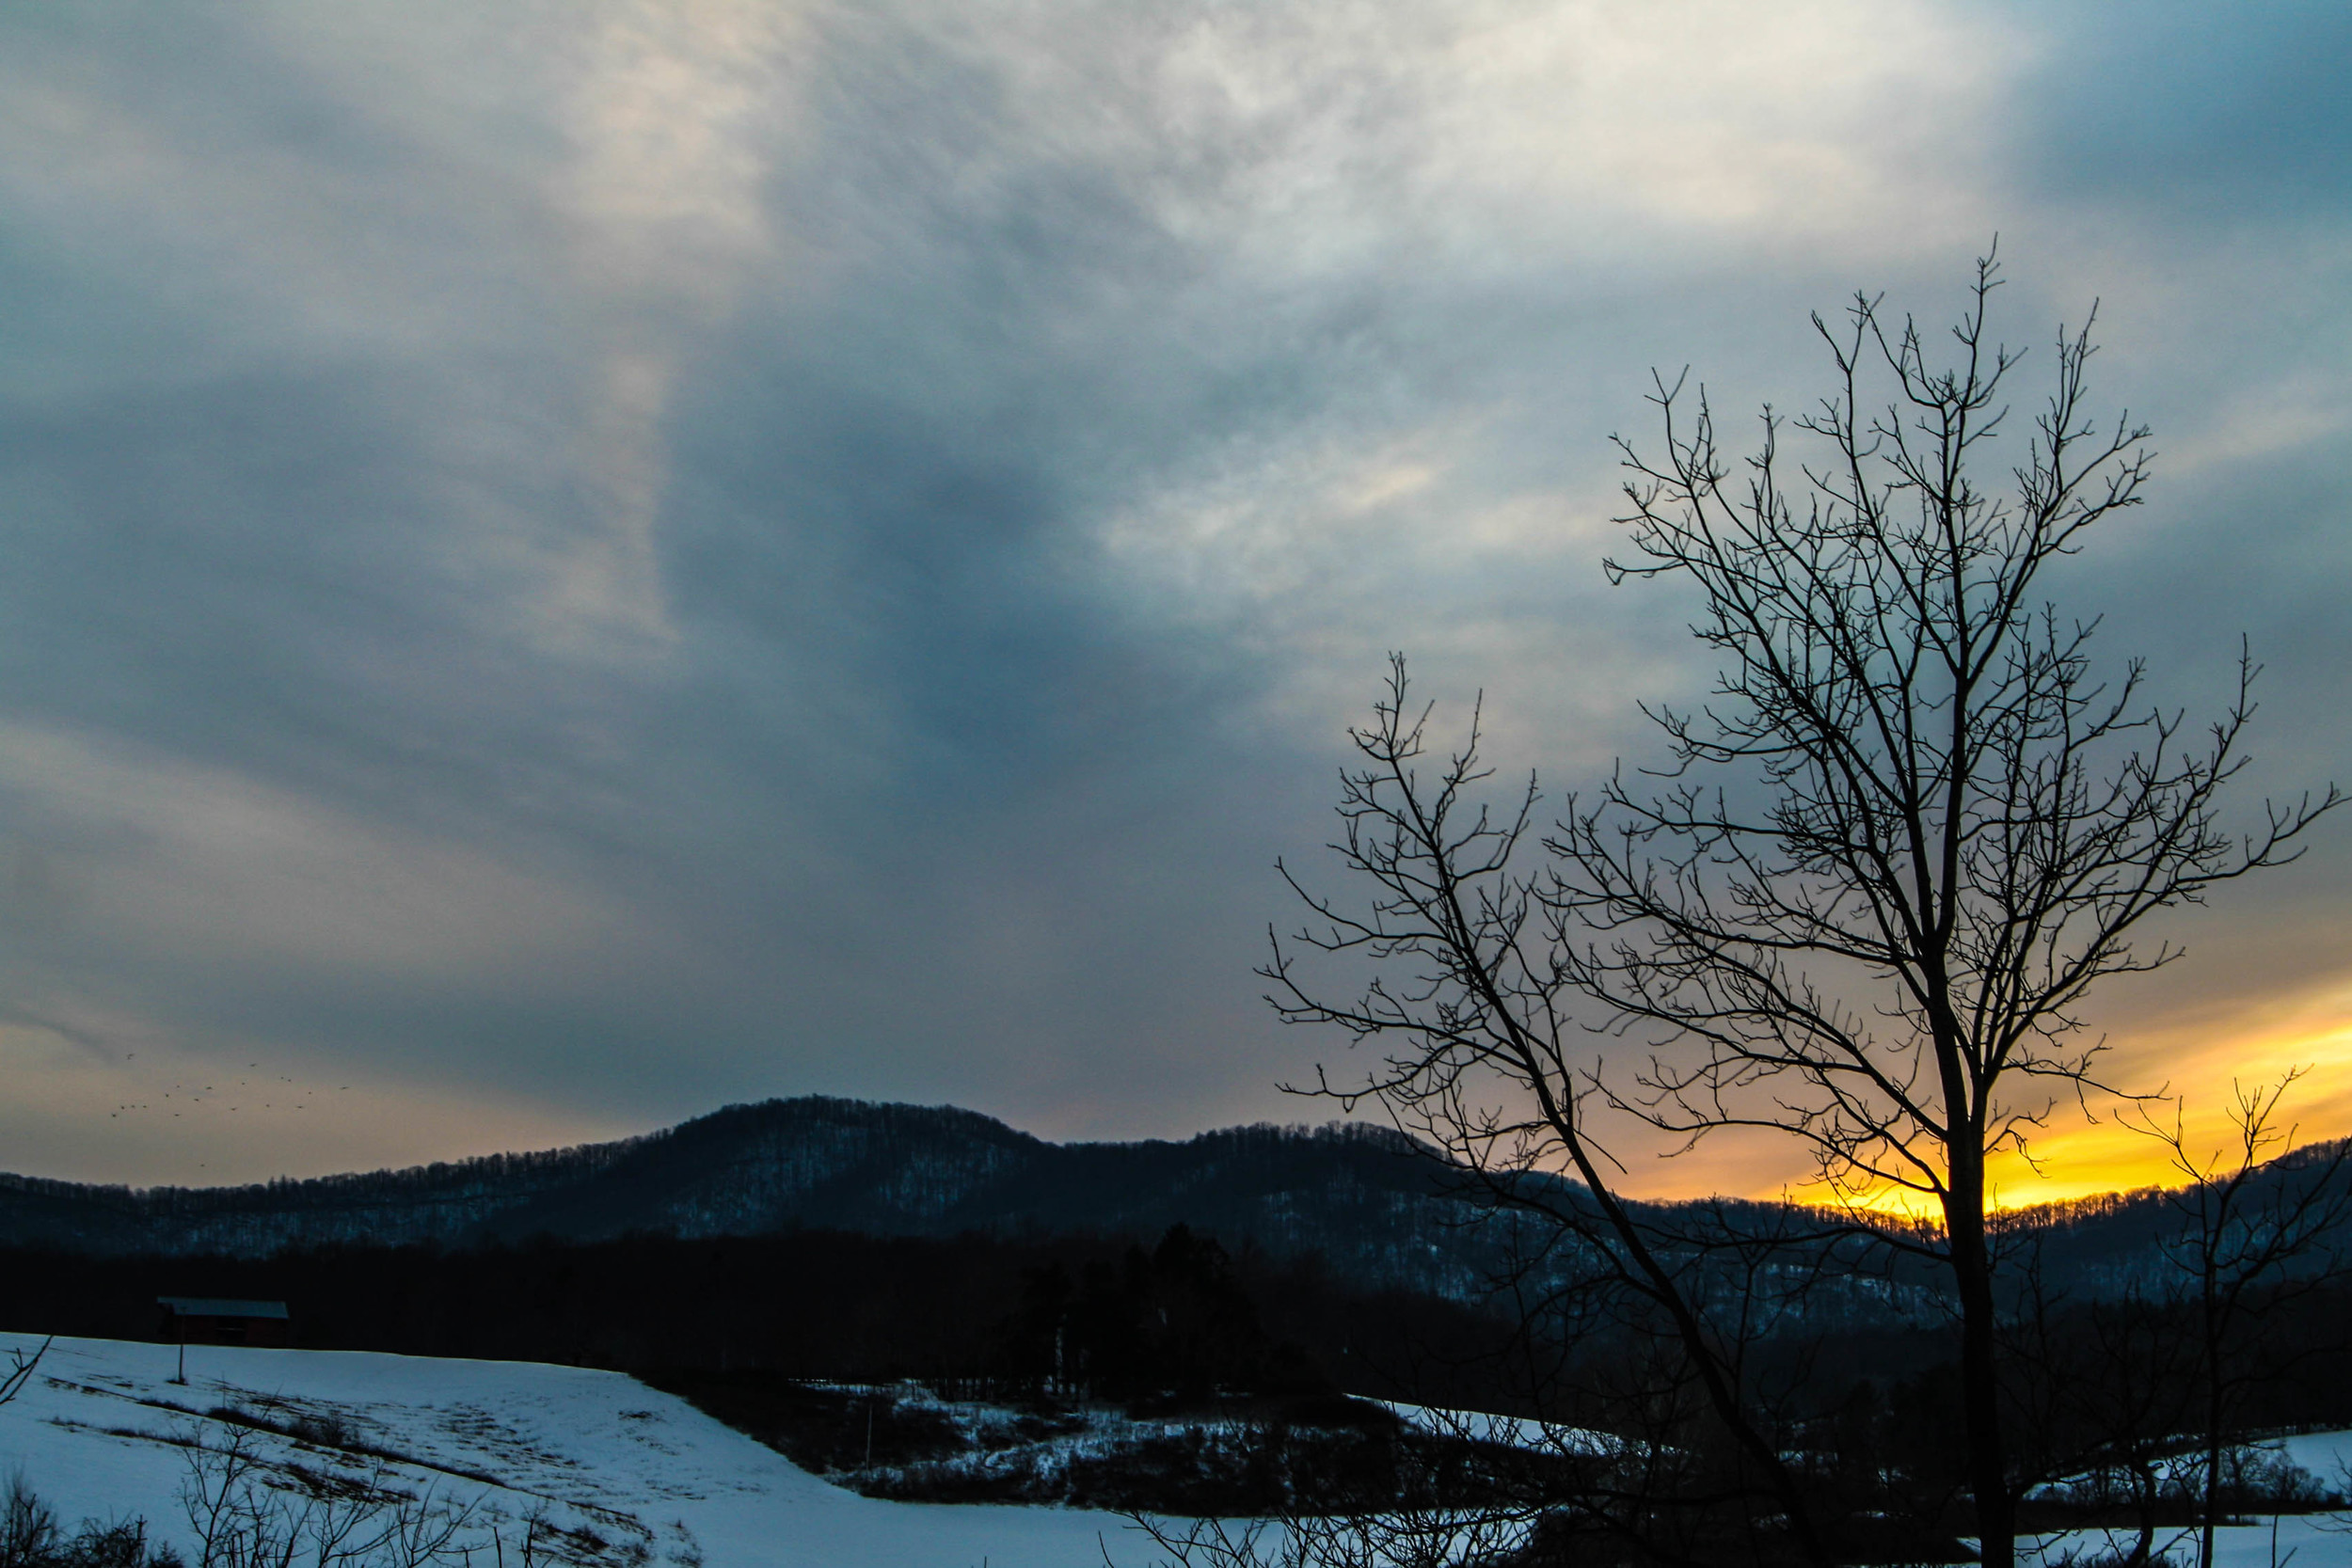 A snowy sunset in mid-January